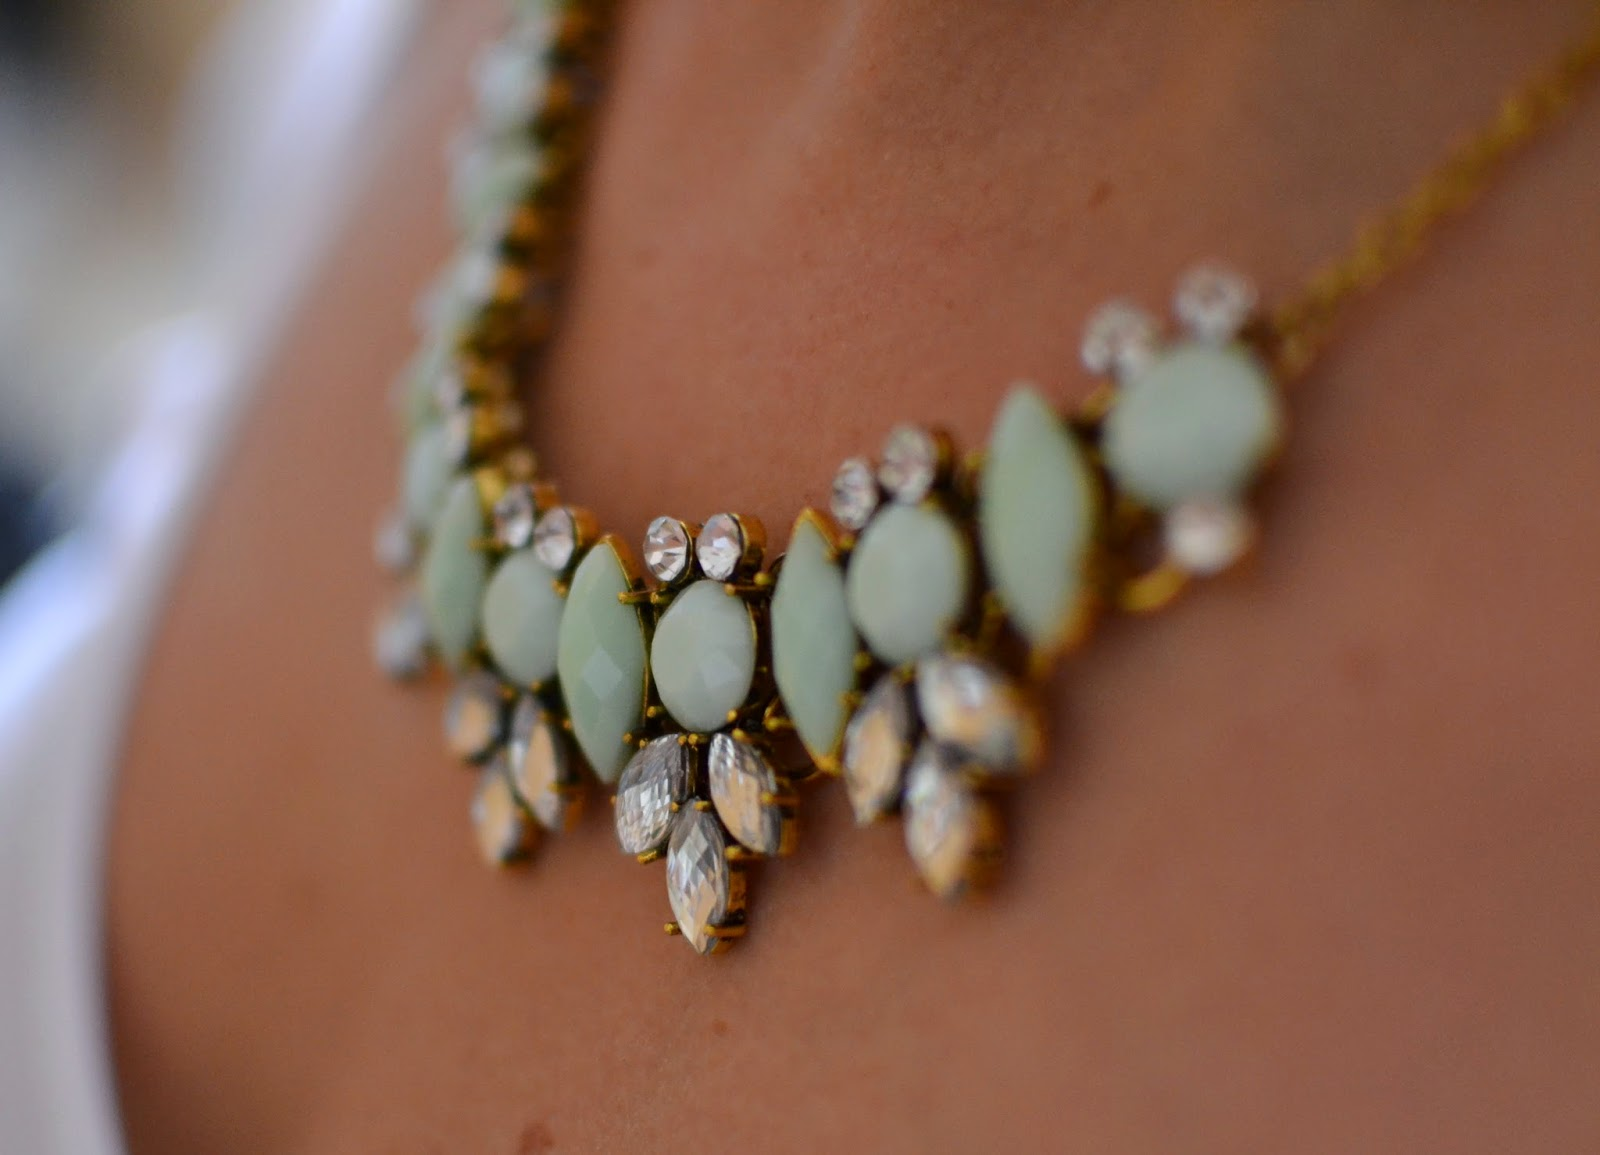 A picture of a Mint acrylic and glass necklace from JewelStreet